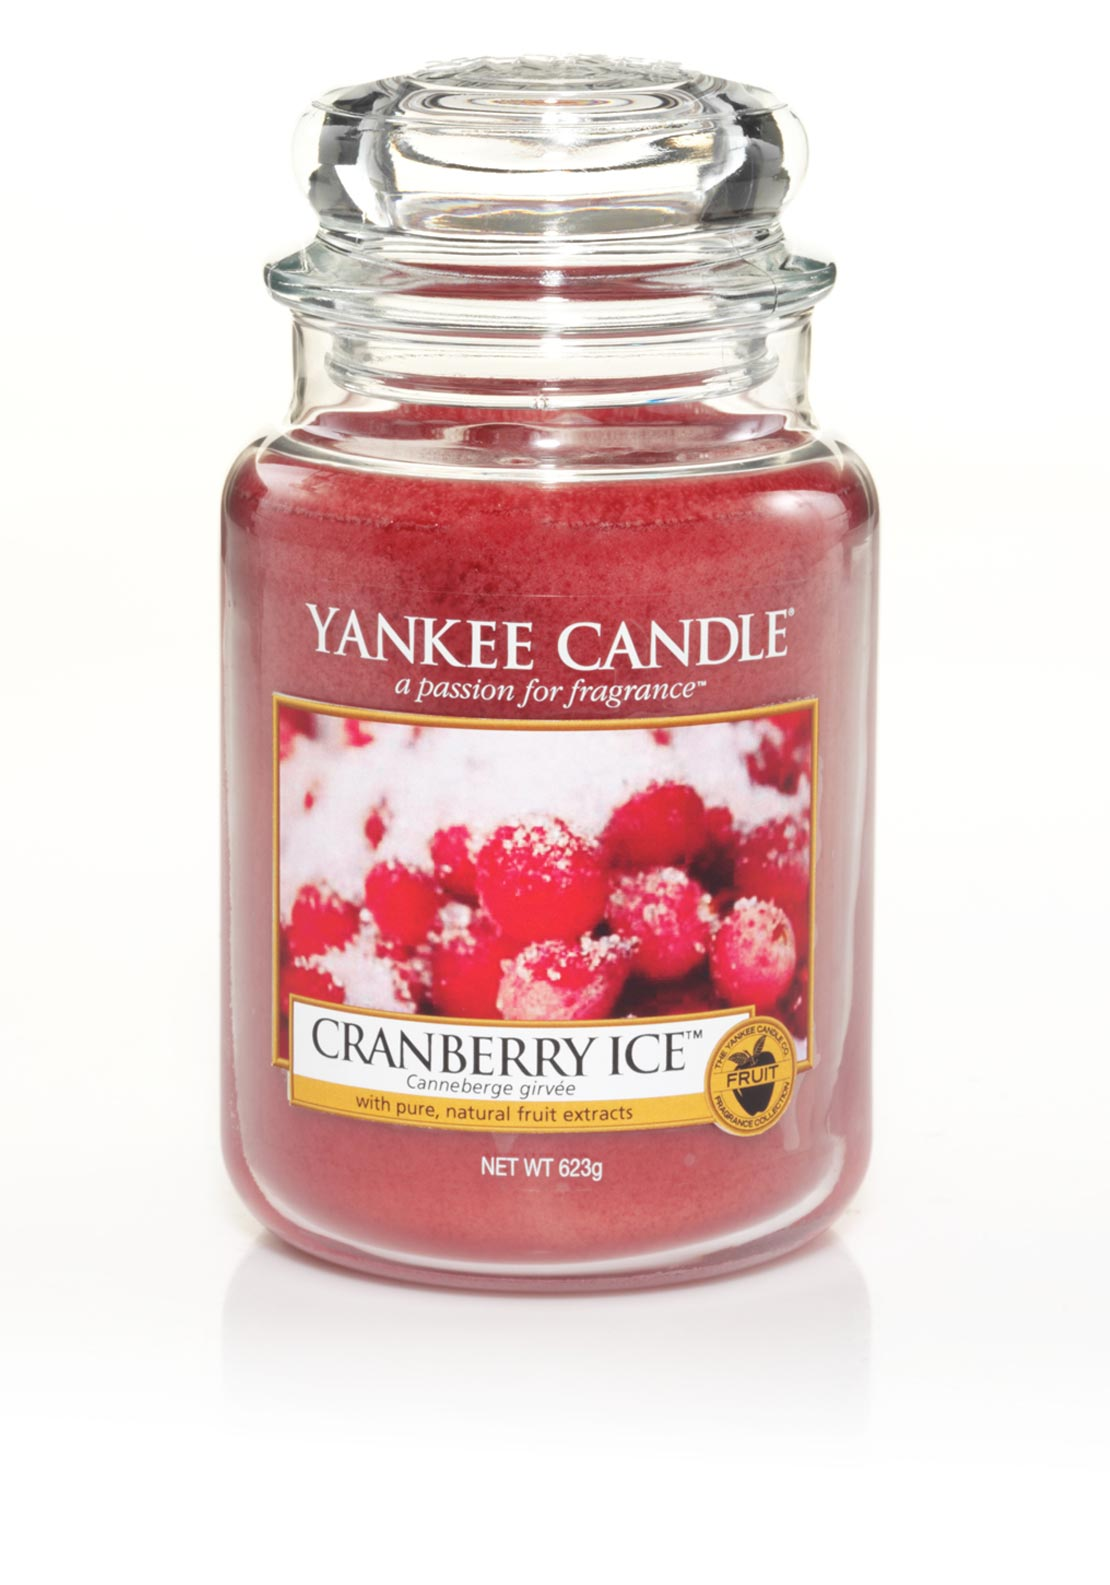 Yankee Candle Large Classic Jar, Cranberry Ice